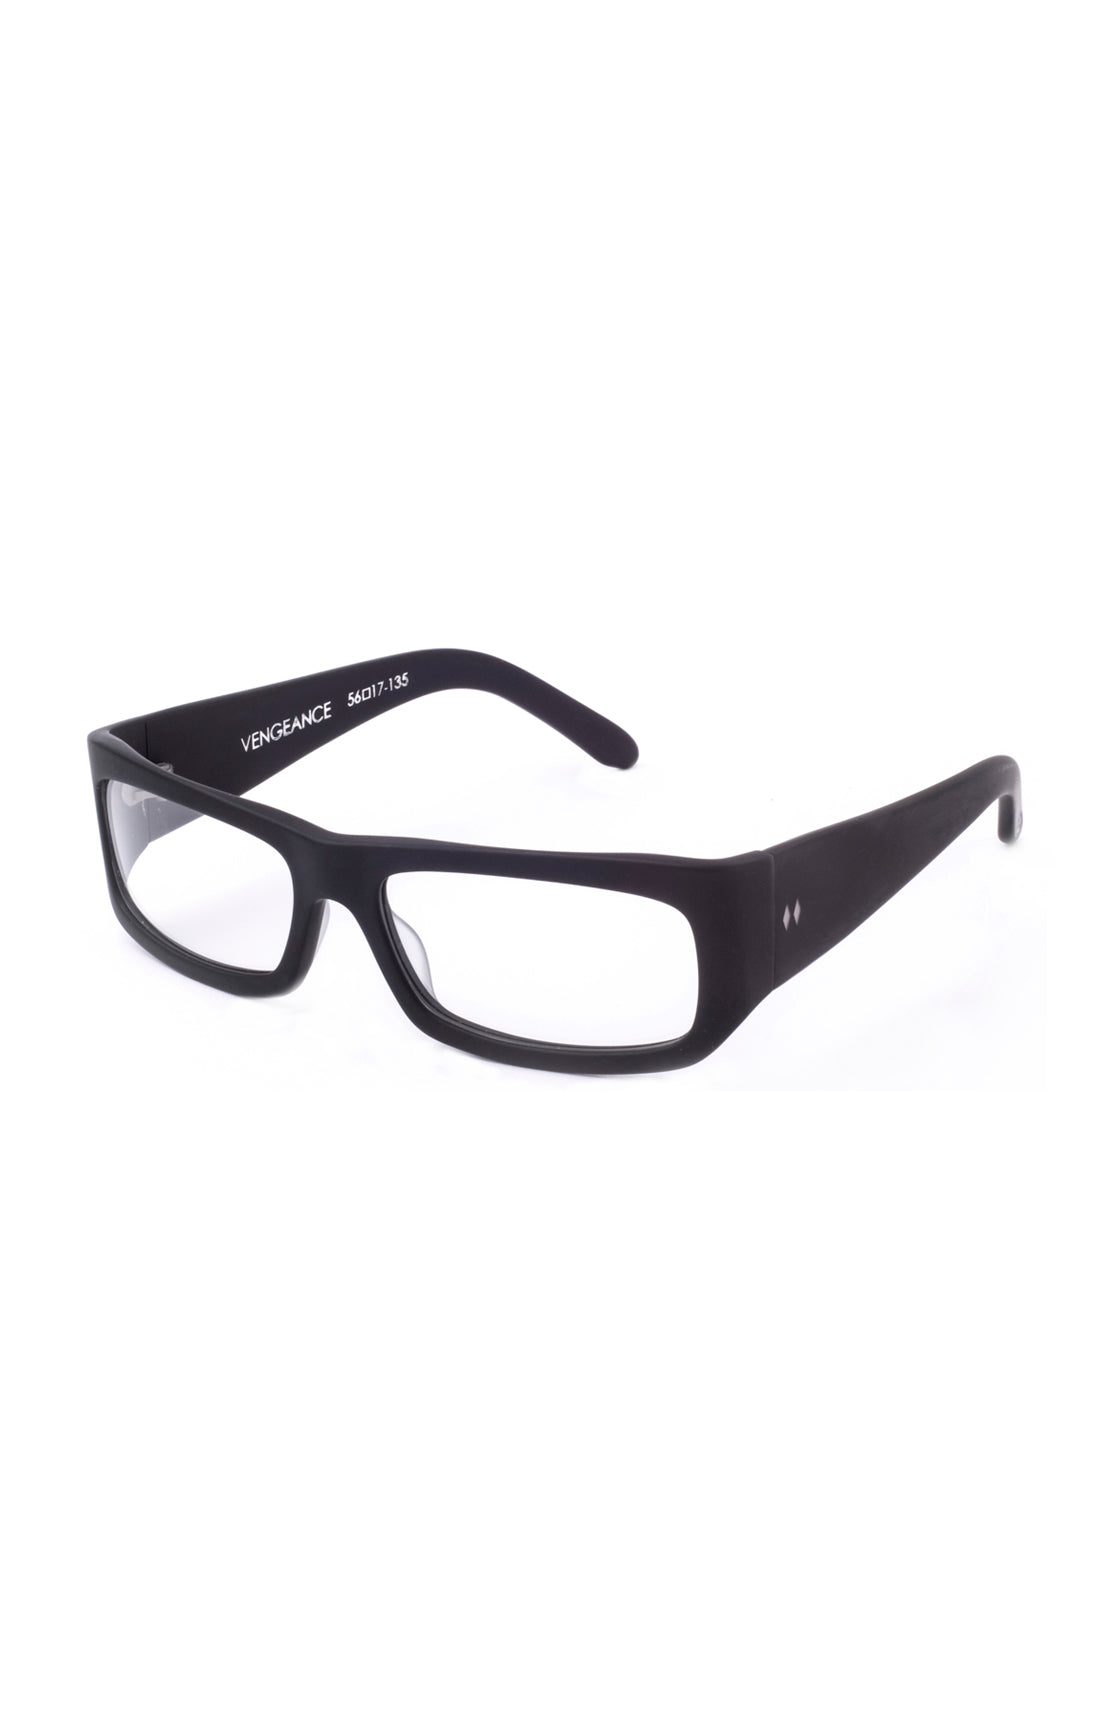 The VENGEANCE Sunglasses - Matte Black Frames with Clear CR-39 ...